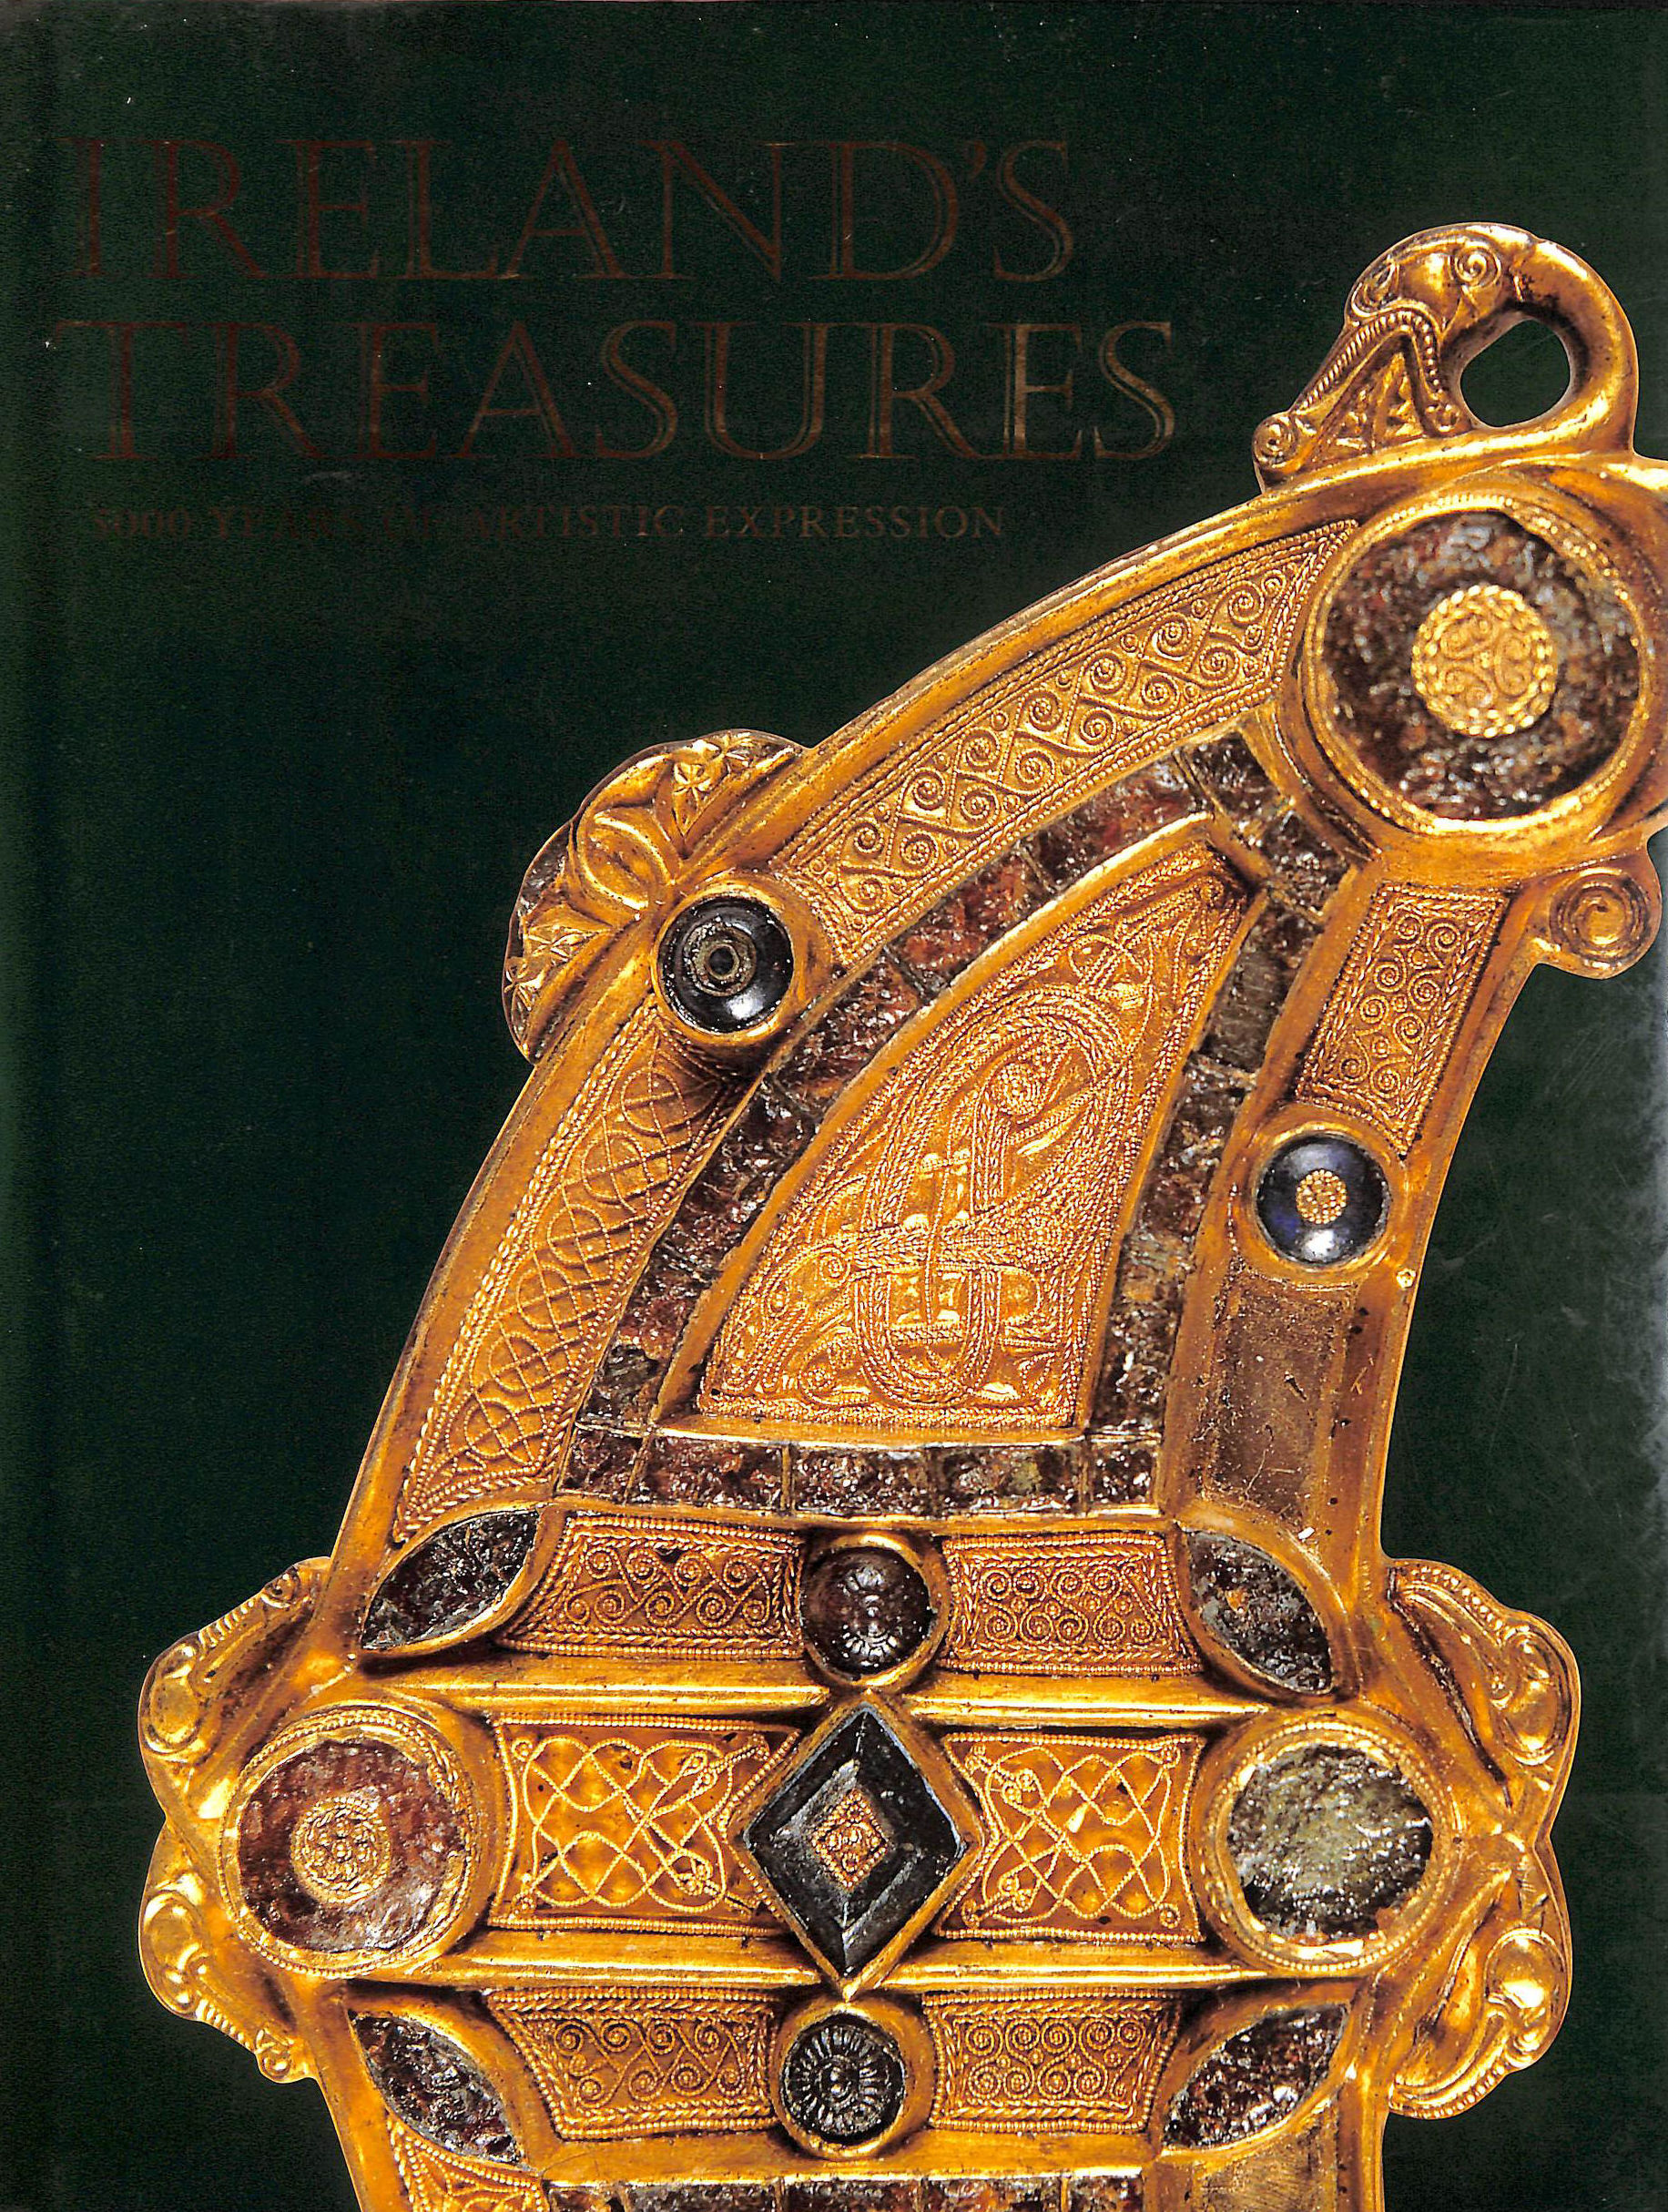 Image for Ireland's Treasures: 5000 Years of Artistic Expression